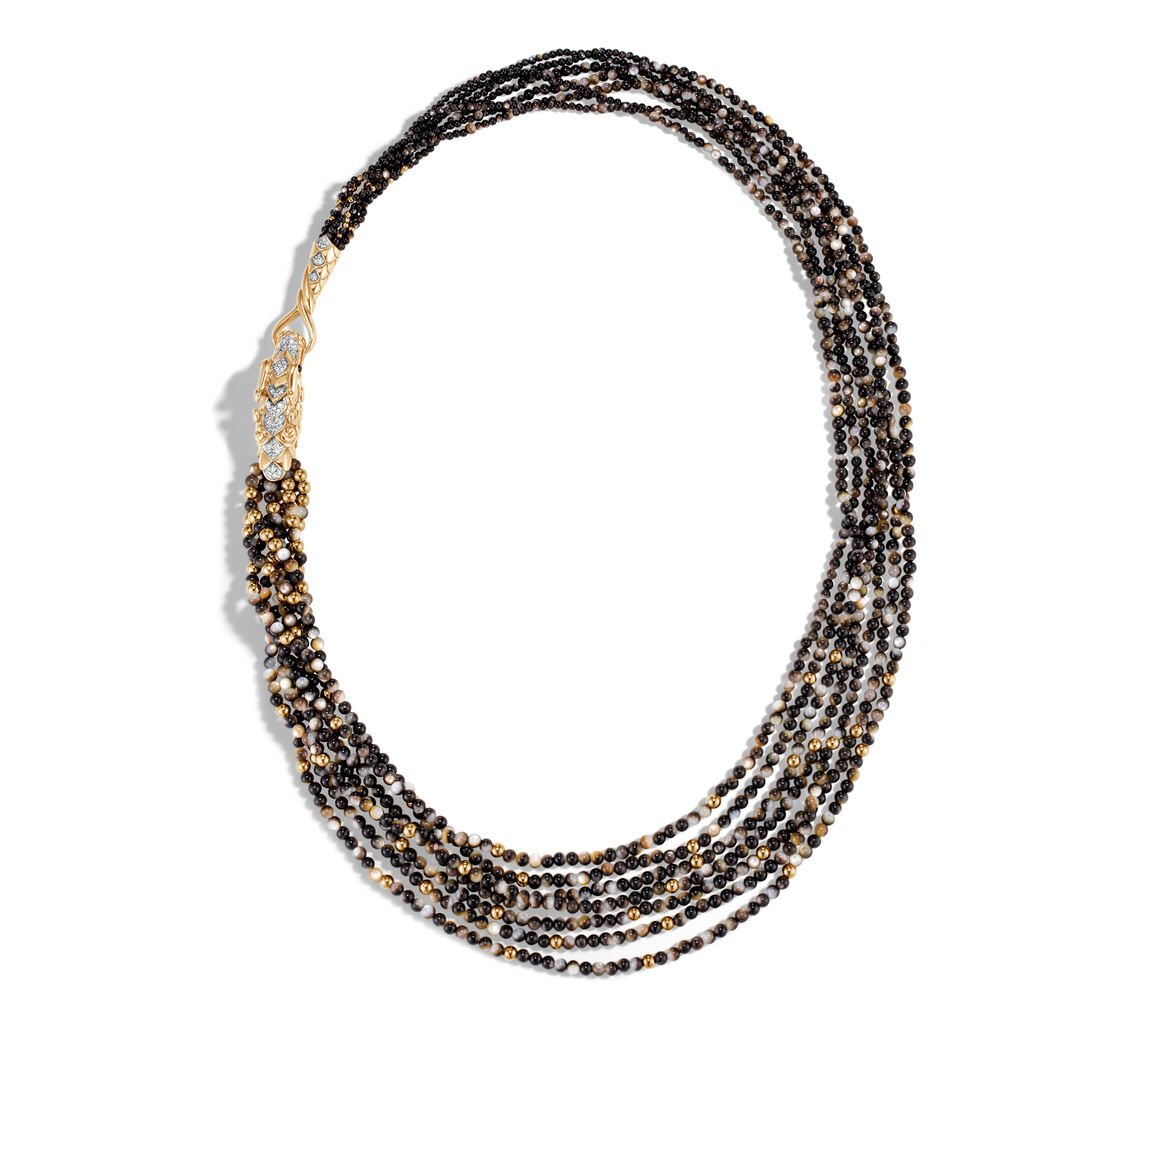 Legends Naga Bib Necklace 18K Gold with Gemstone, Diamonds